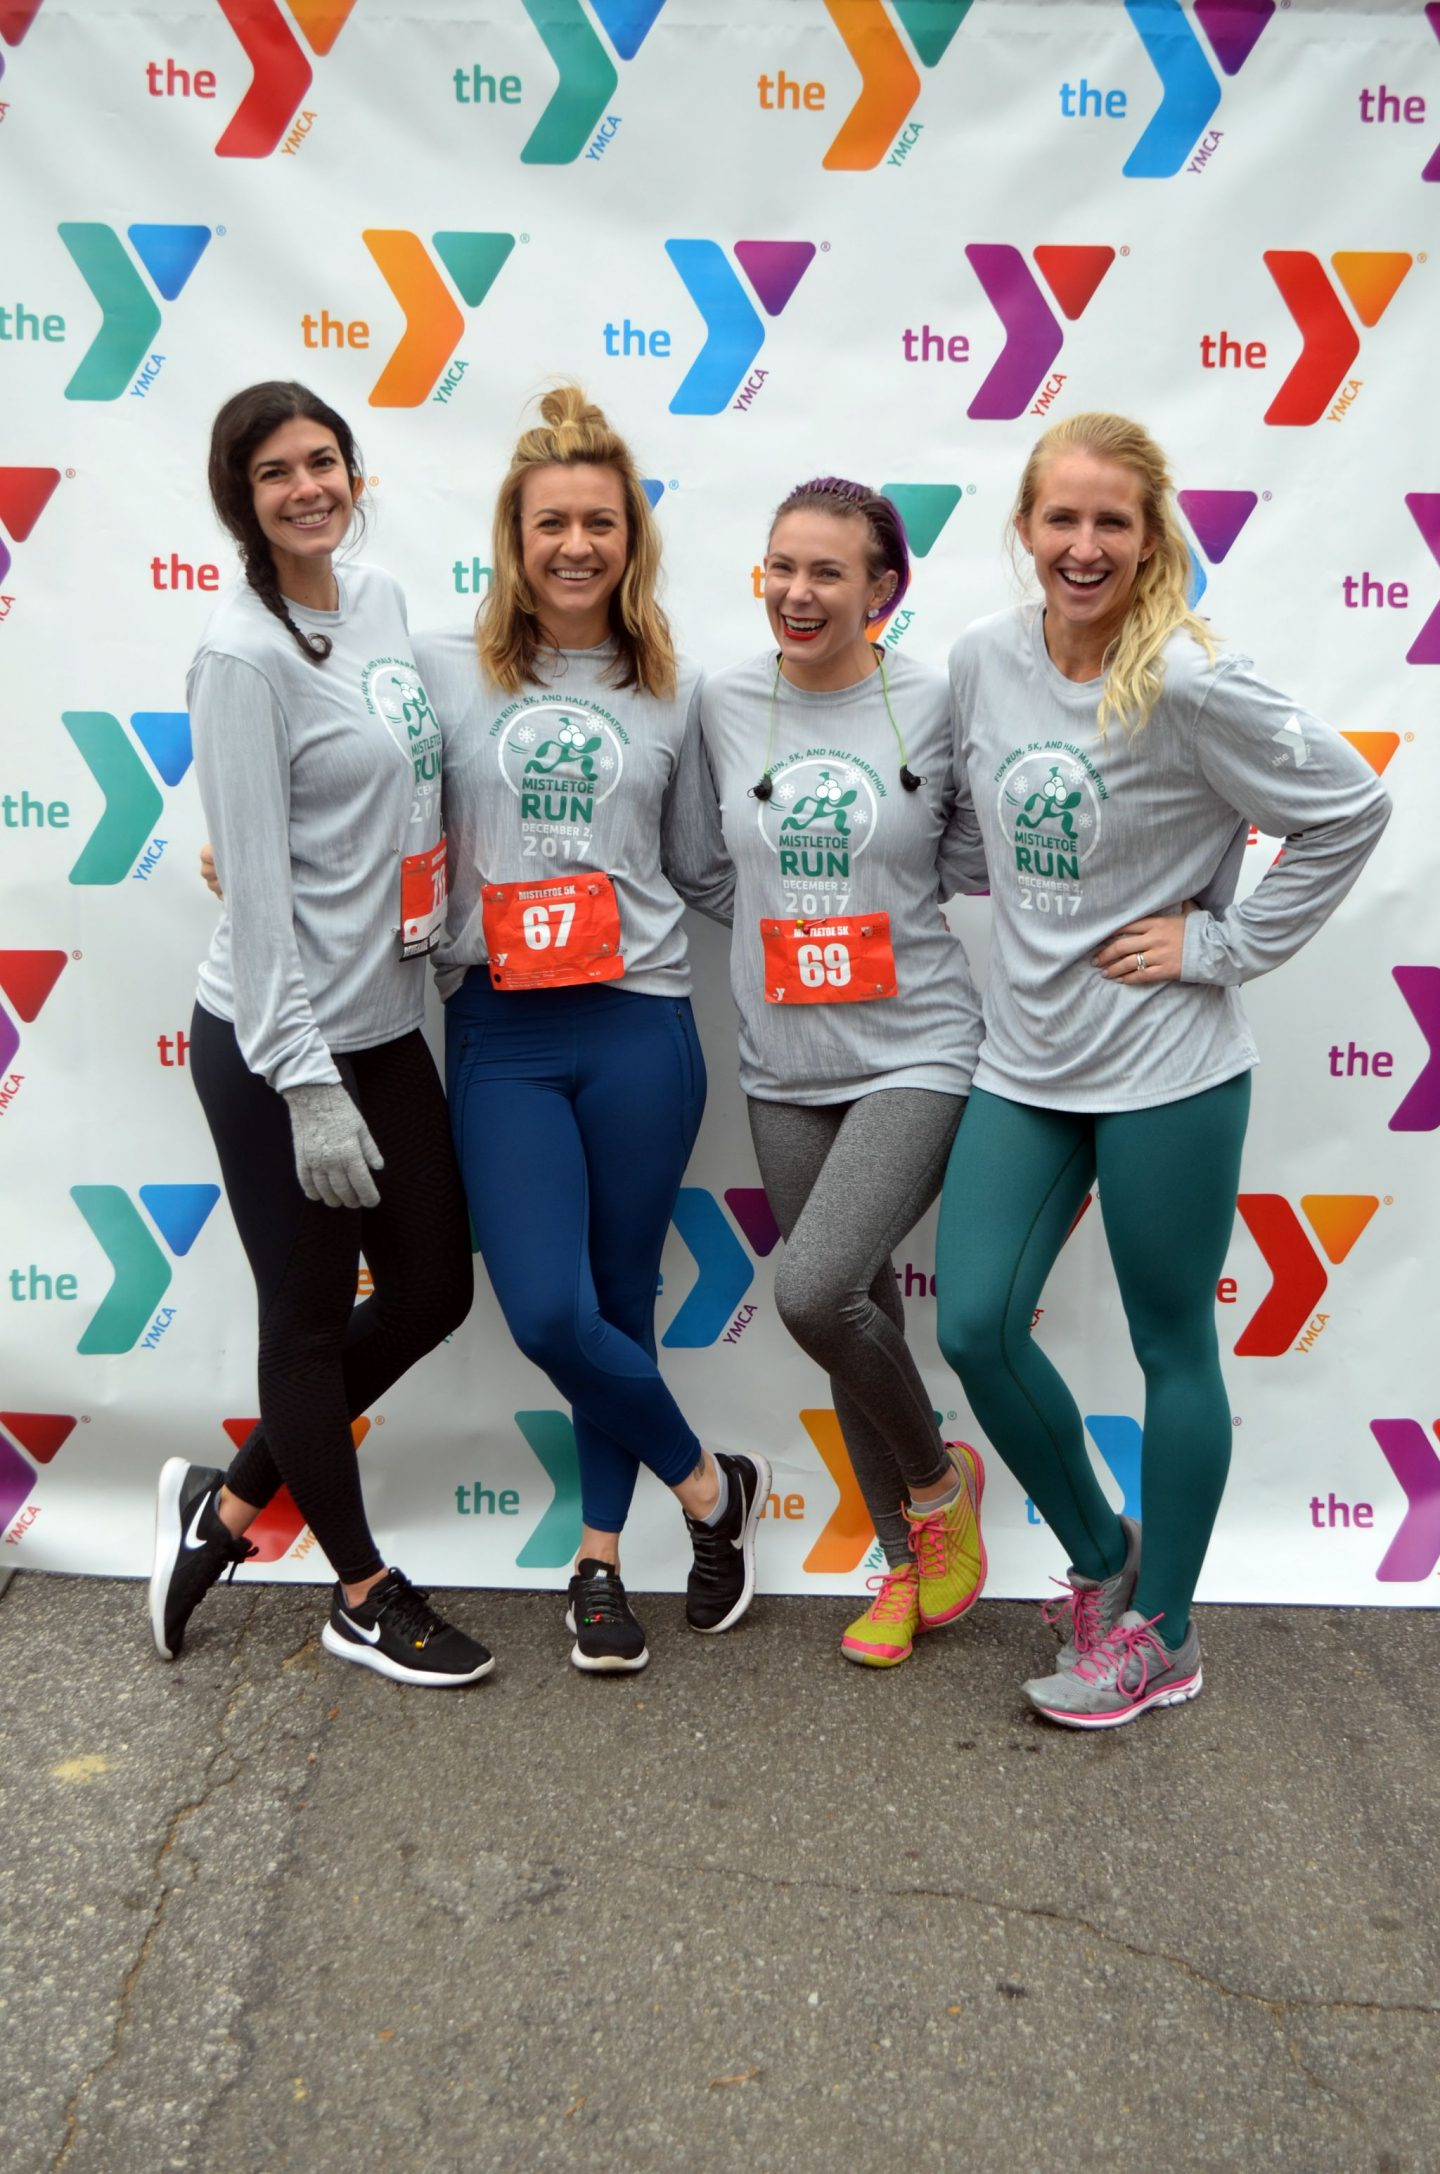 YMCA Mistletoe Run - Winston Salem - Lauren Schwaiger Travel Blog